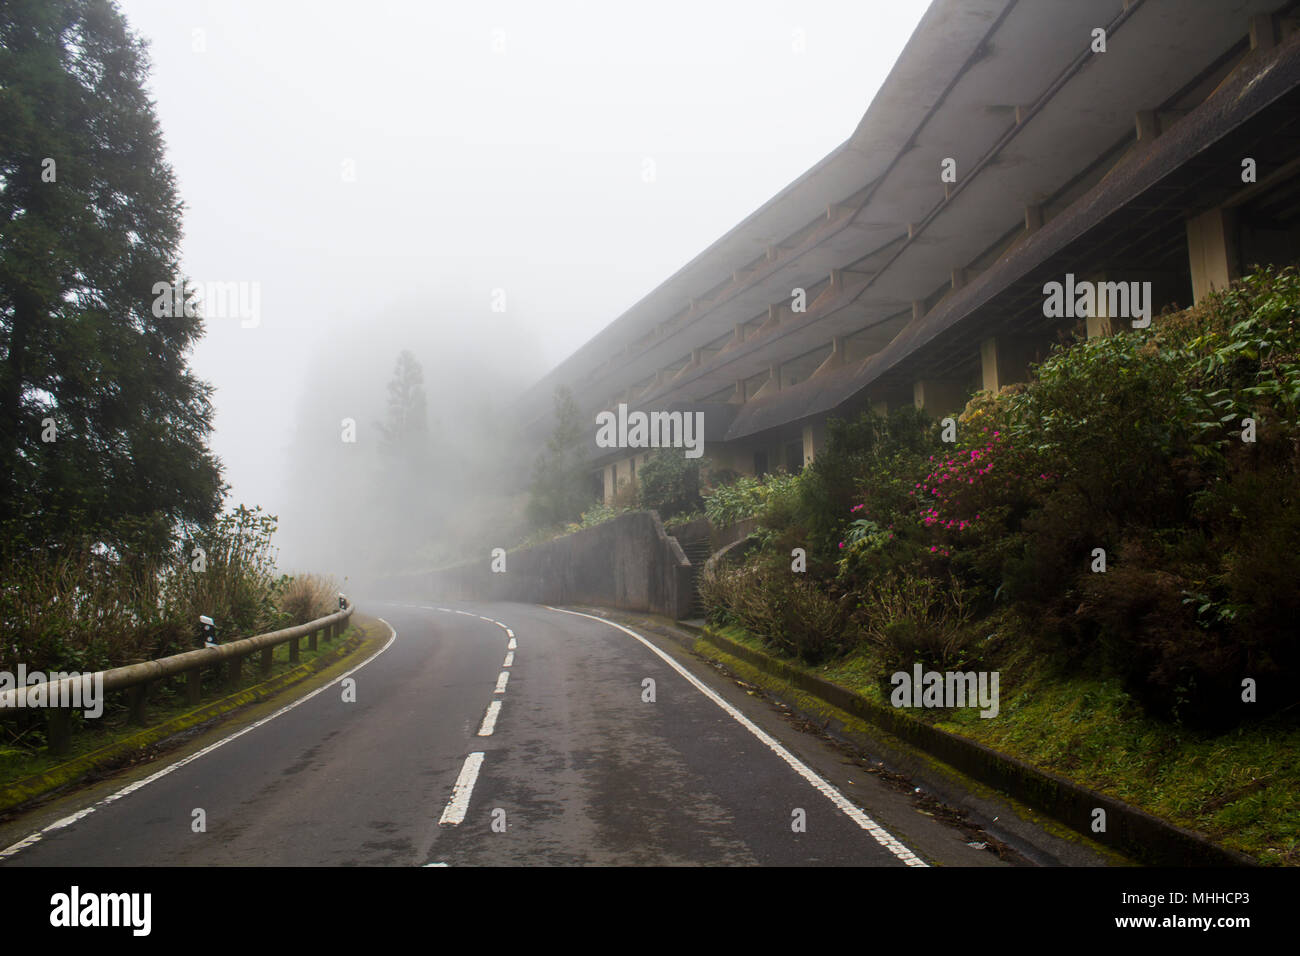 Abandoned hotel on mysterious road with fog - Stock Image